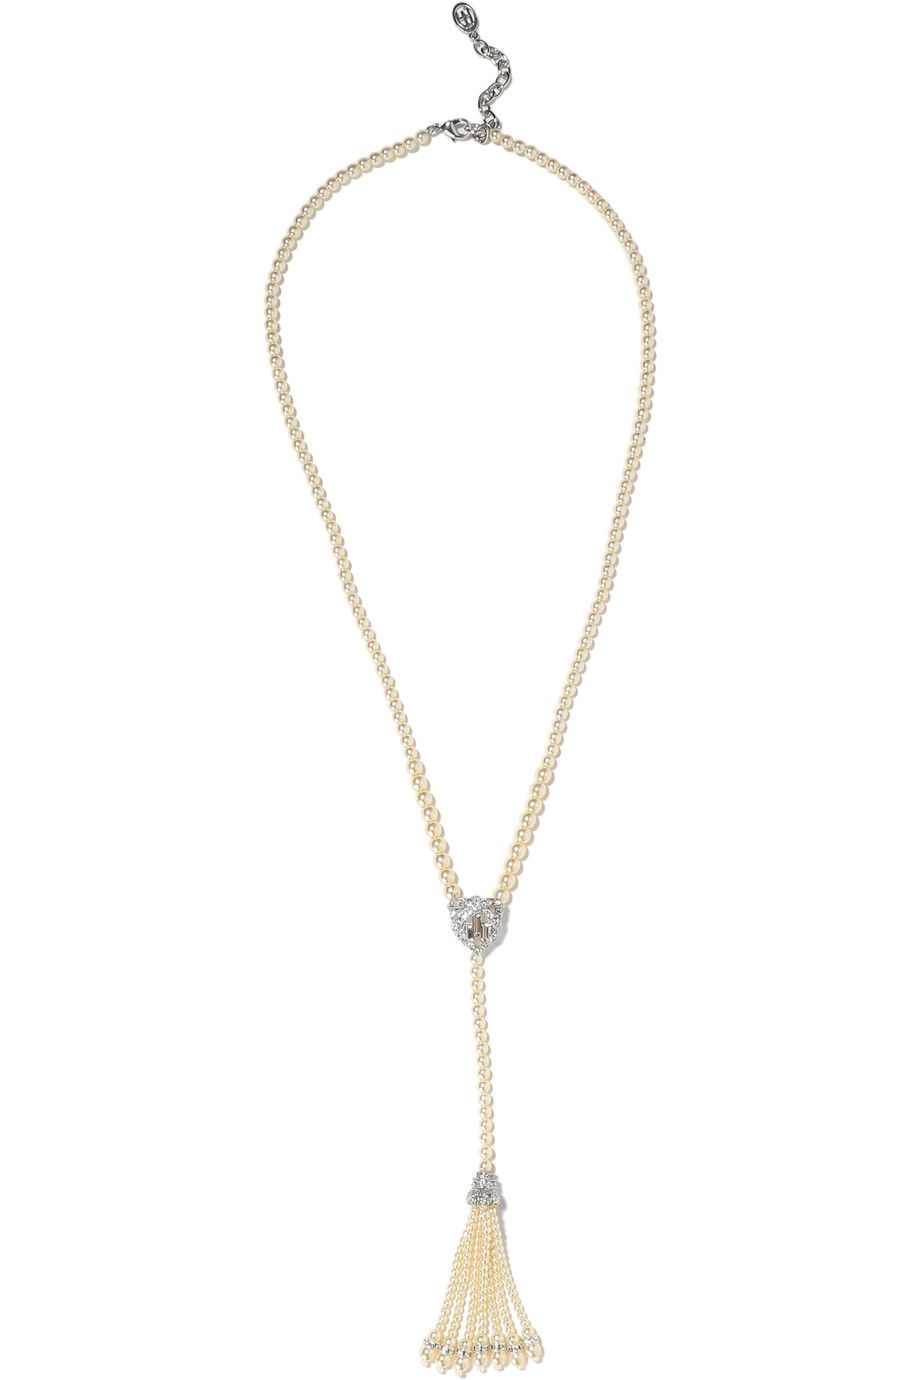 BEN-AMUN Tasseled silver-tone, faux pearl and crystal necklace. #ben-amun #